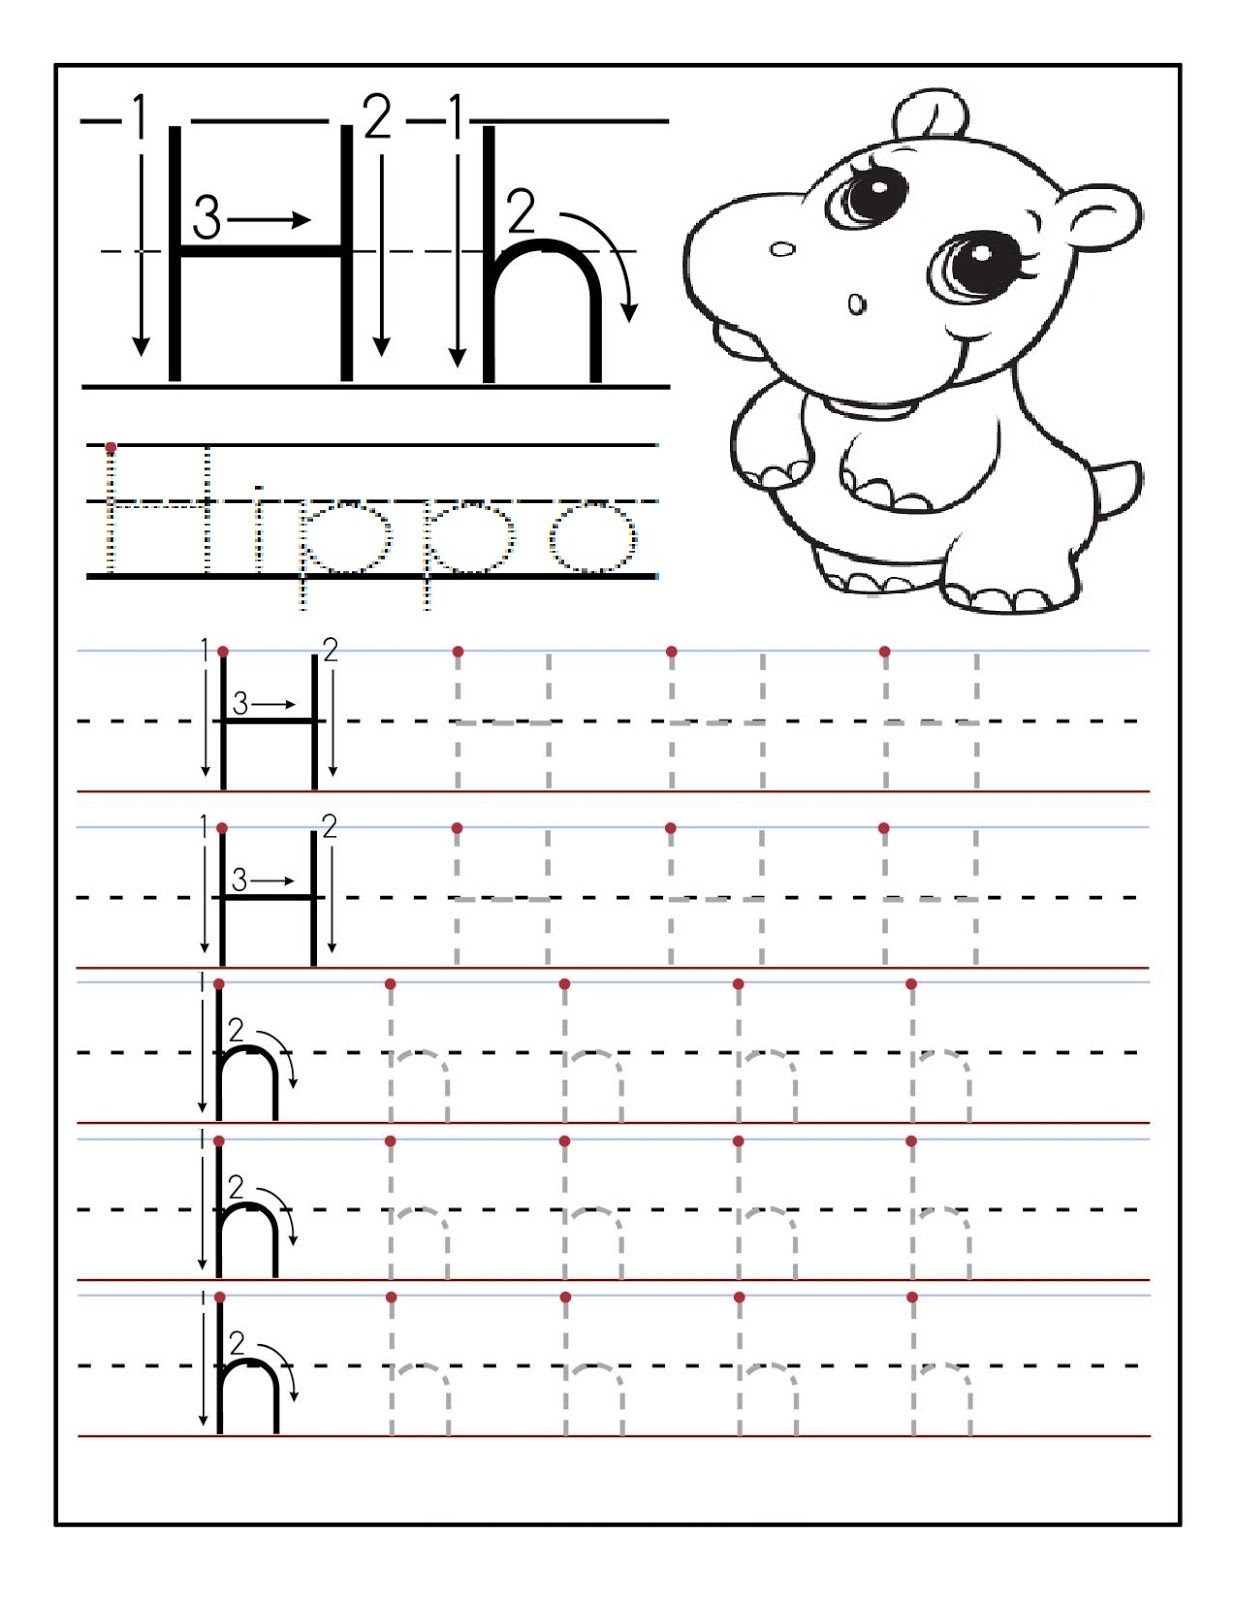 Printable letter H tracing worksheets for preschoolers Preschool